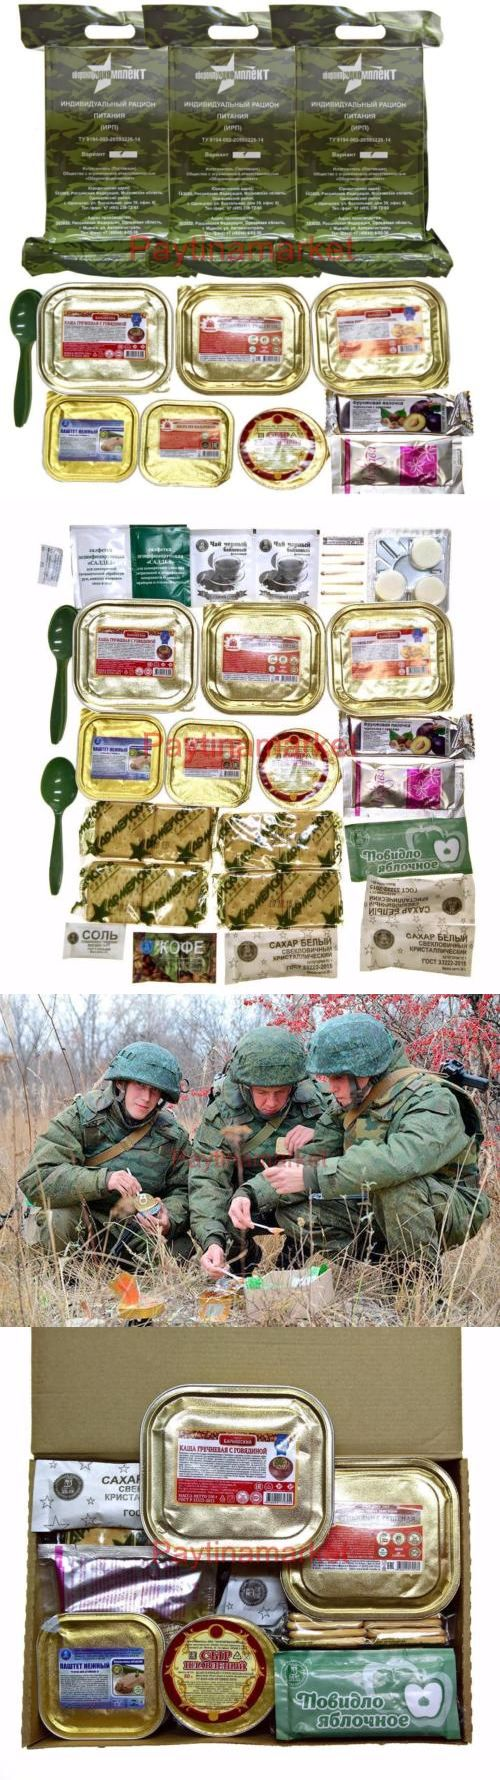 Food And Drink: Military Russian Army Food Ration Daily Pack Mre Emergency Rations Meal Combat BUY IT NOW ONLY: $41.9